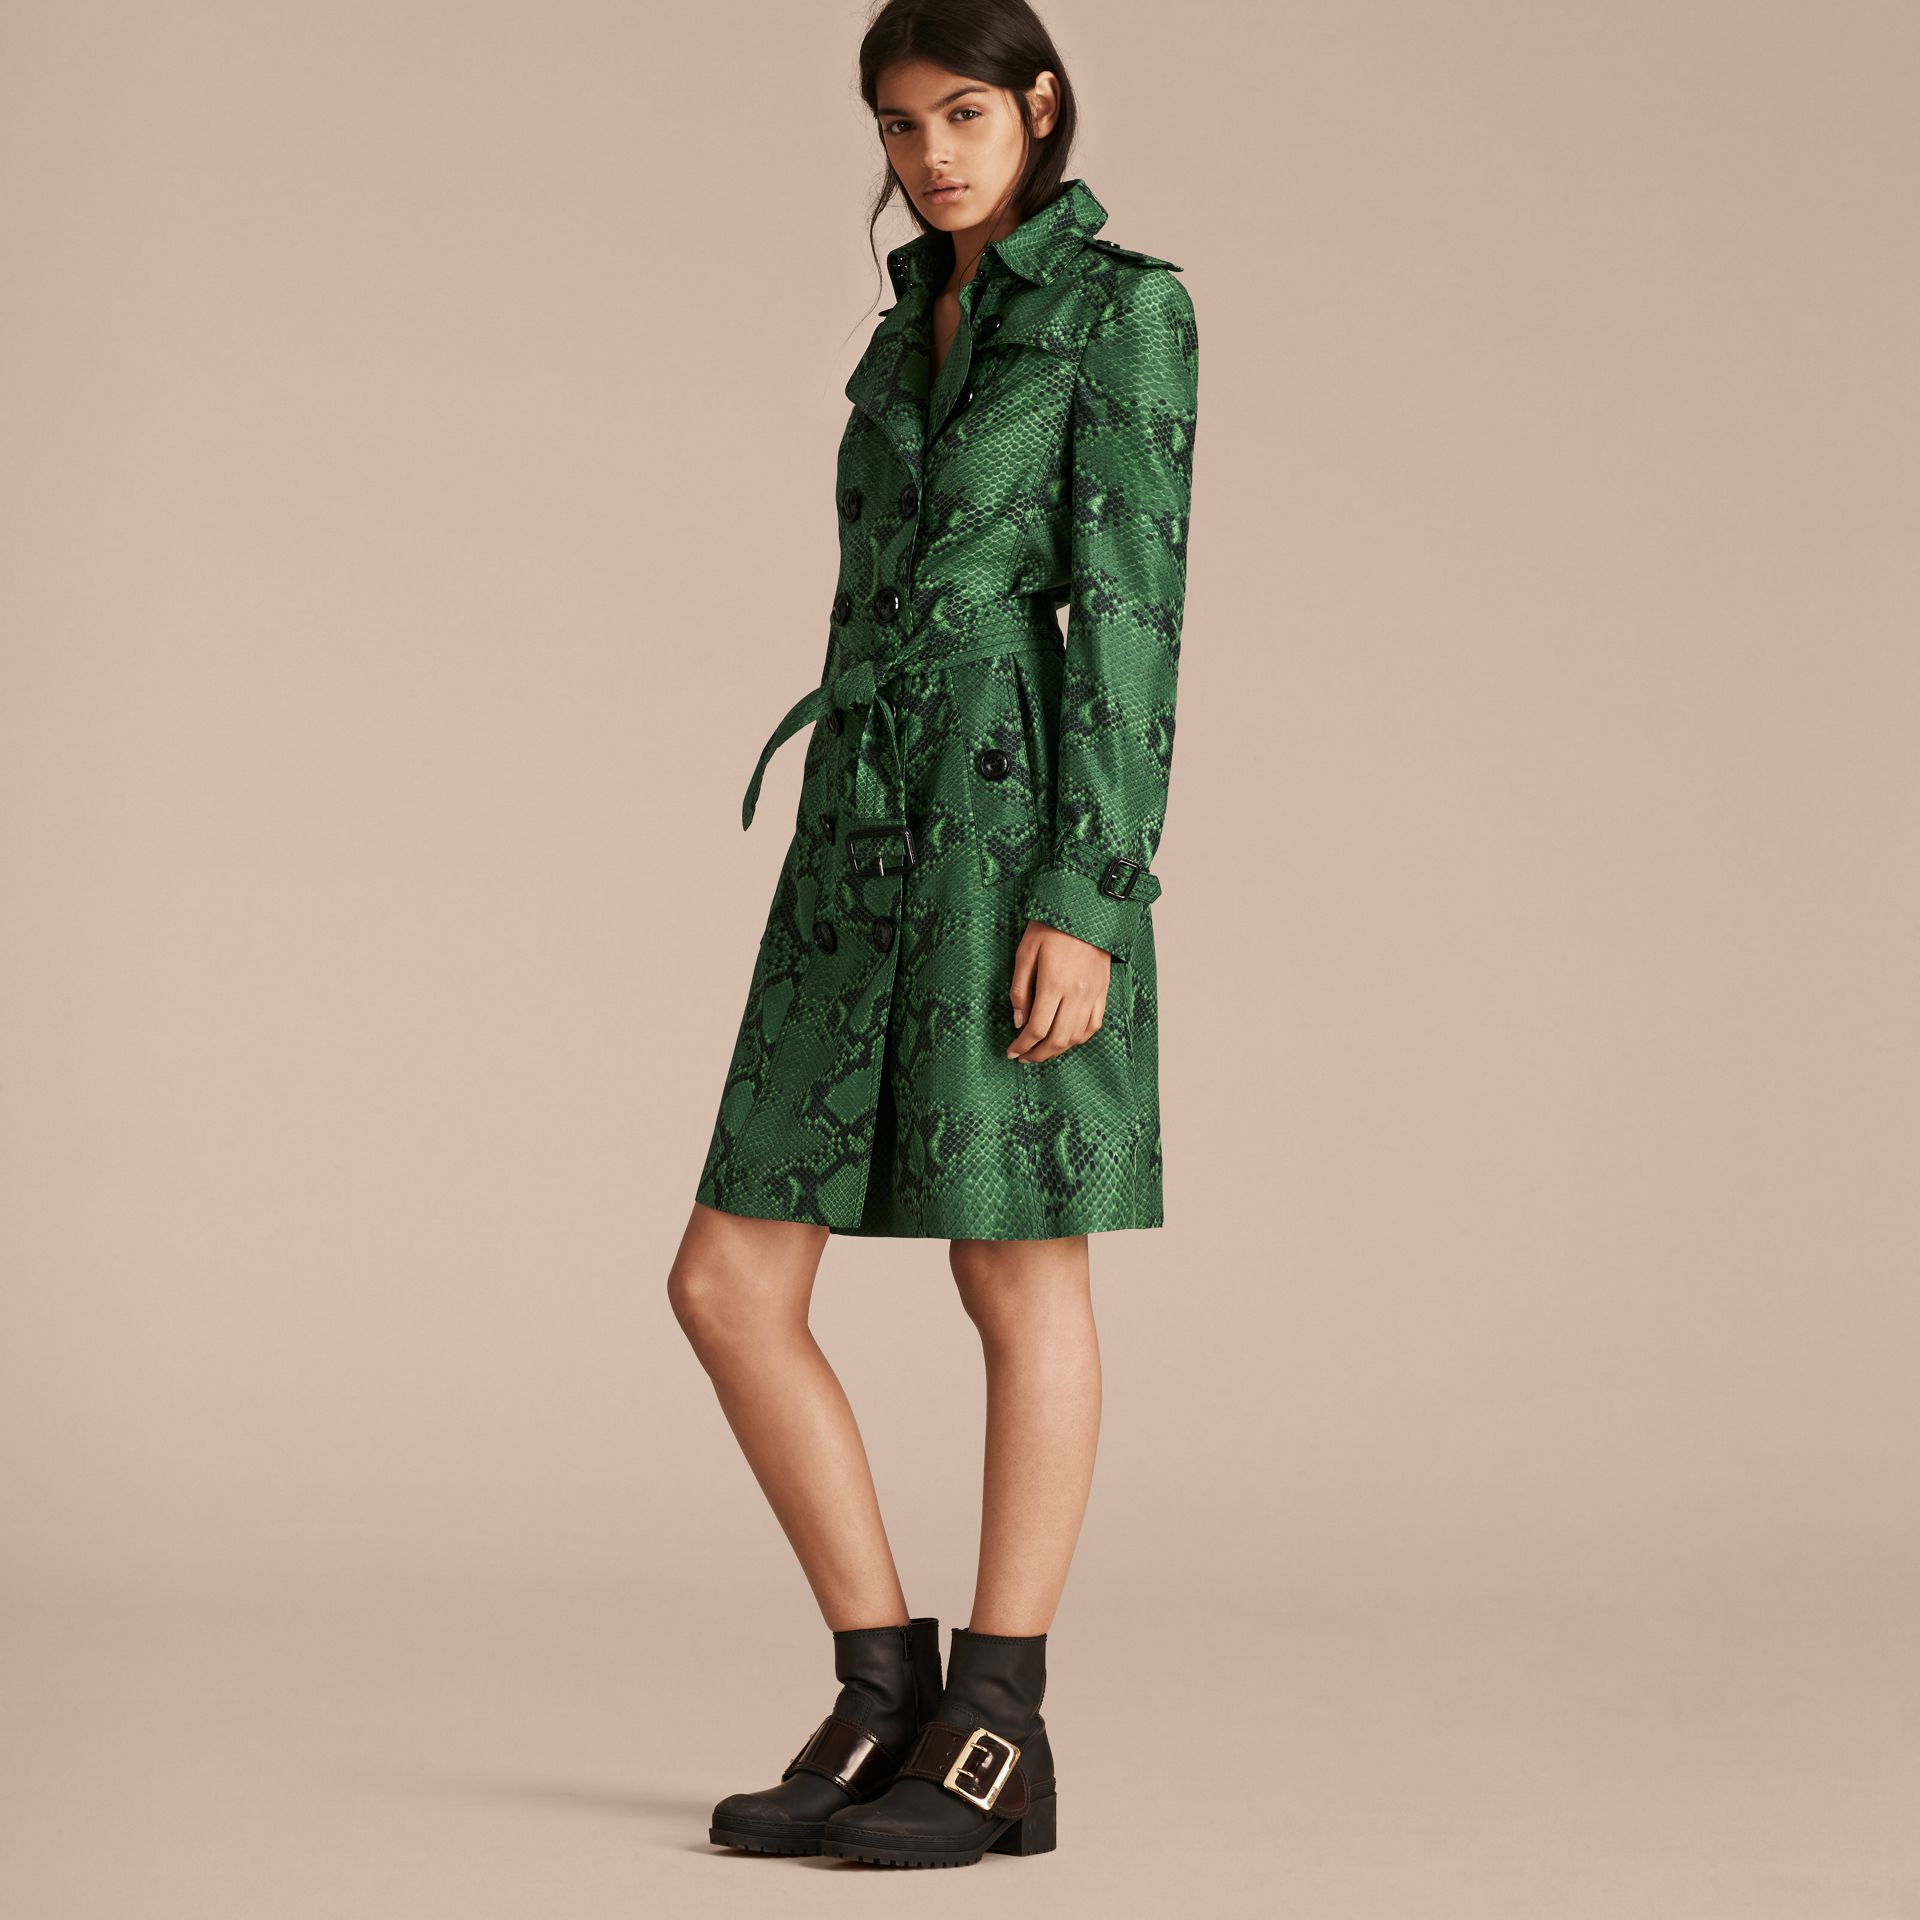 Verde brillante Trench coat in seta con stampa pitone Verde Brillante - immagine della galleria 6